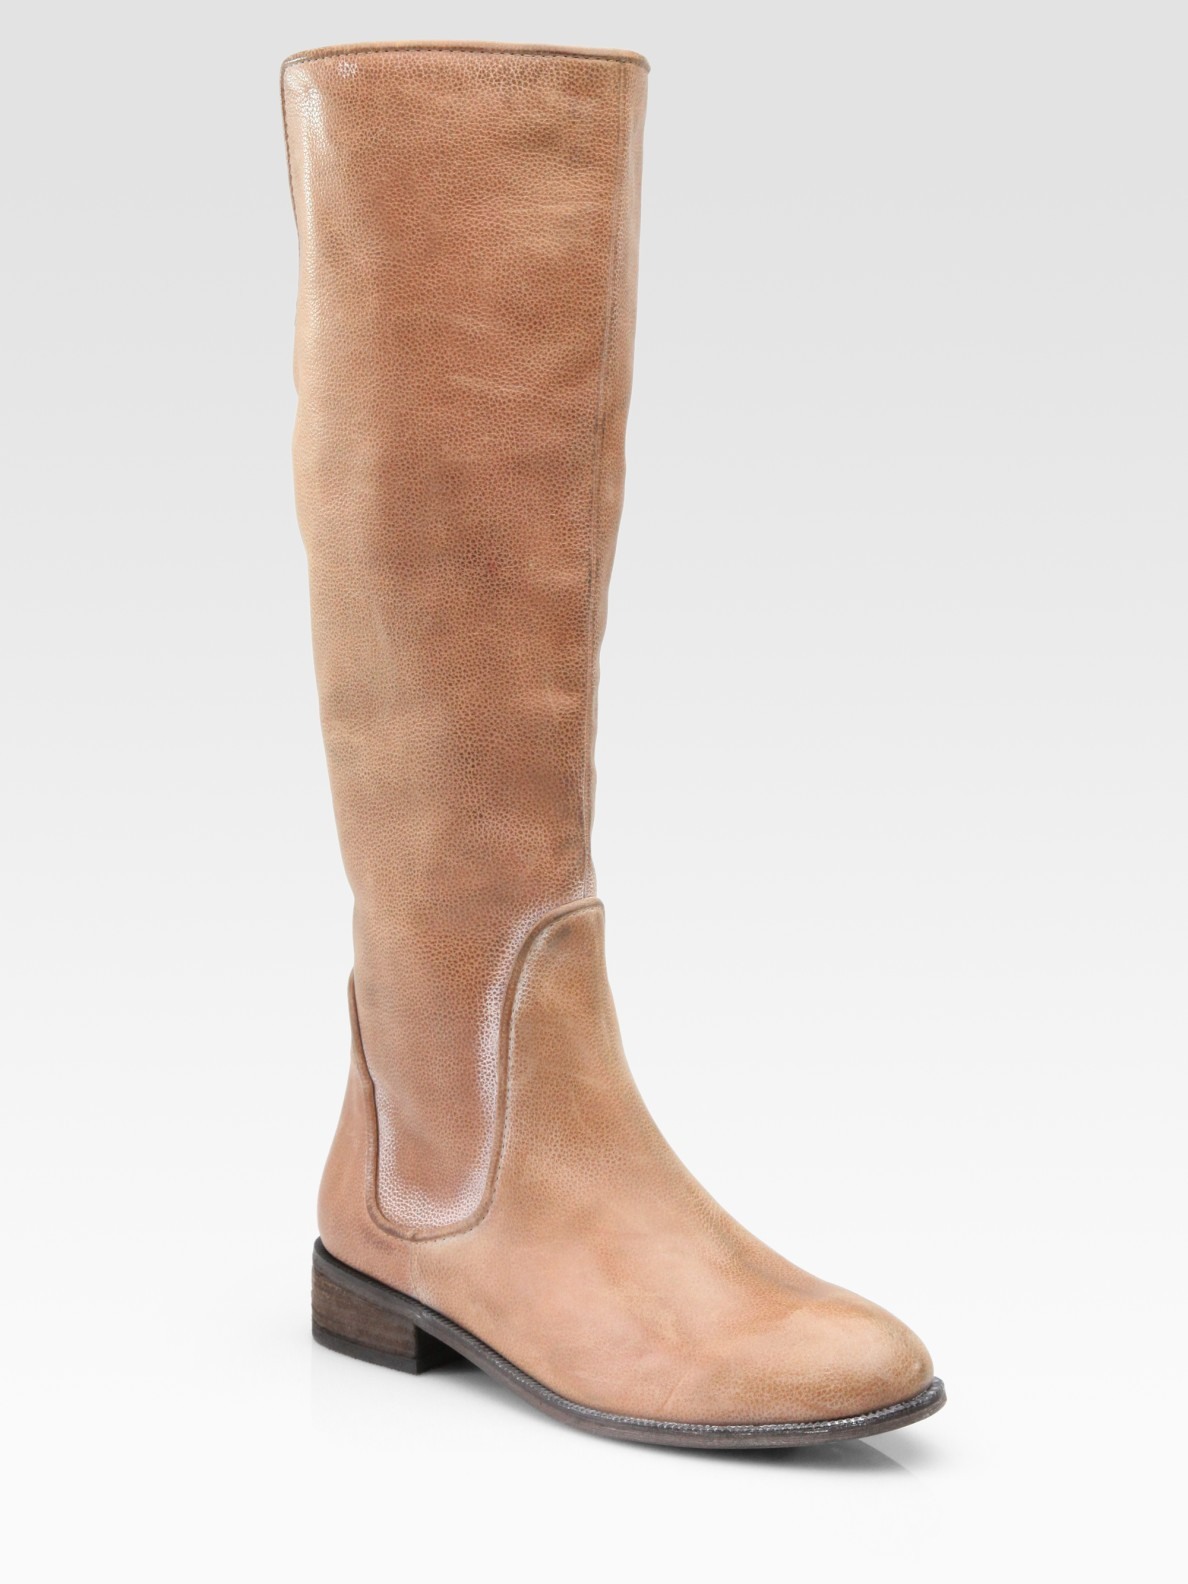 joie big time leather knee high boots in beige